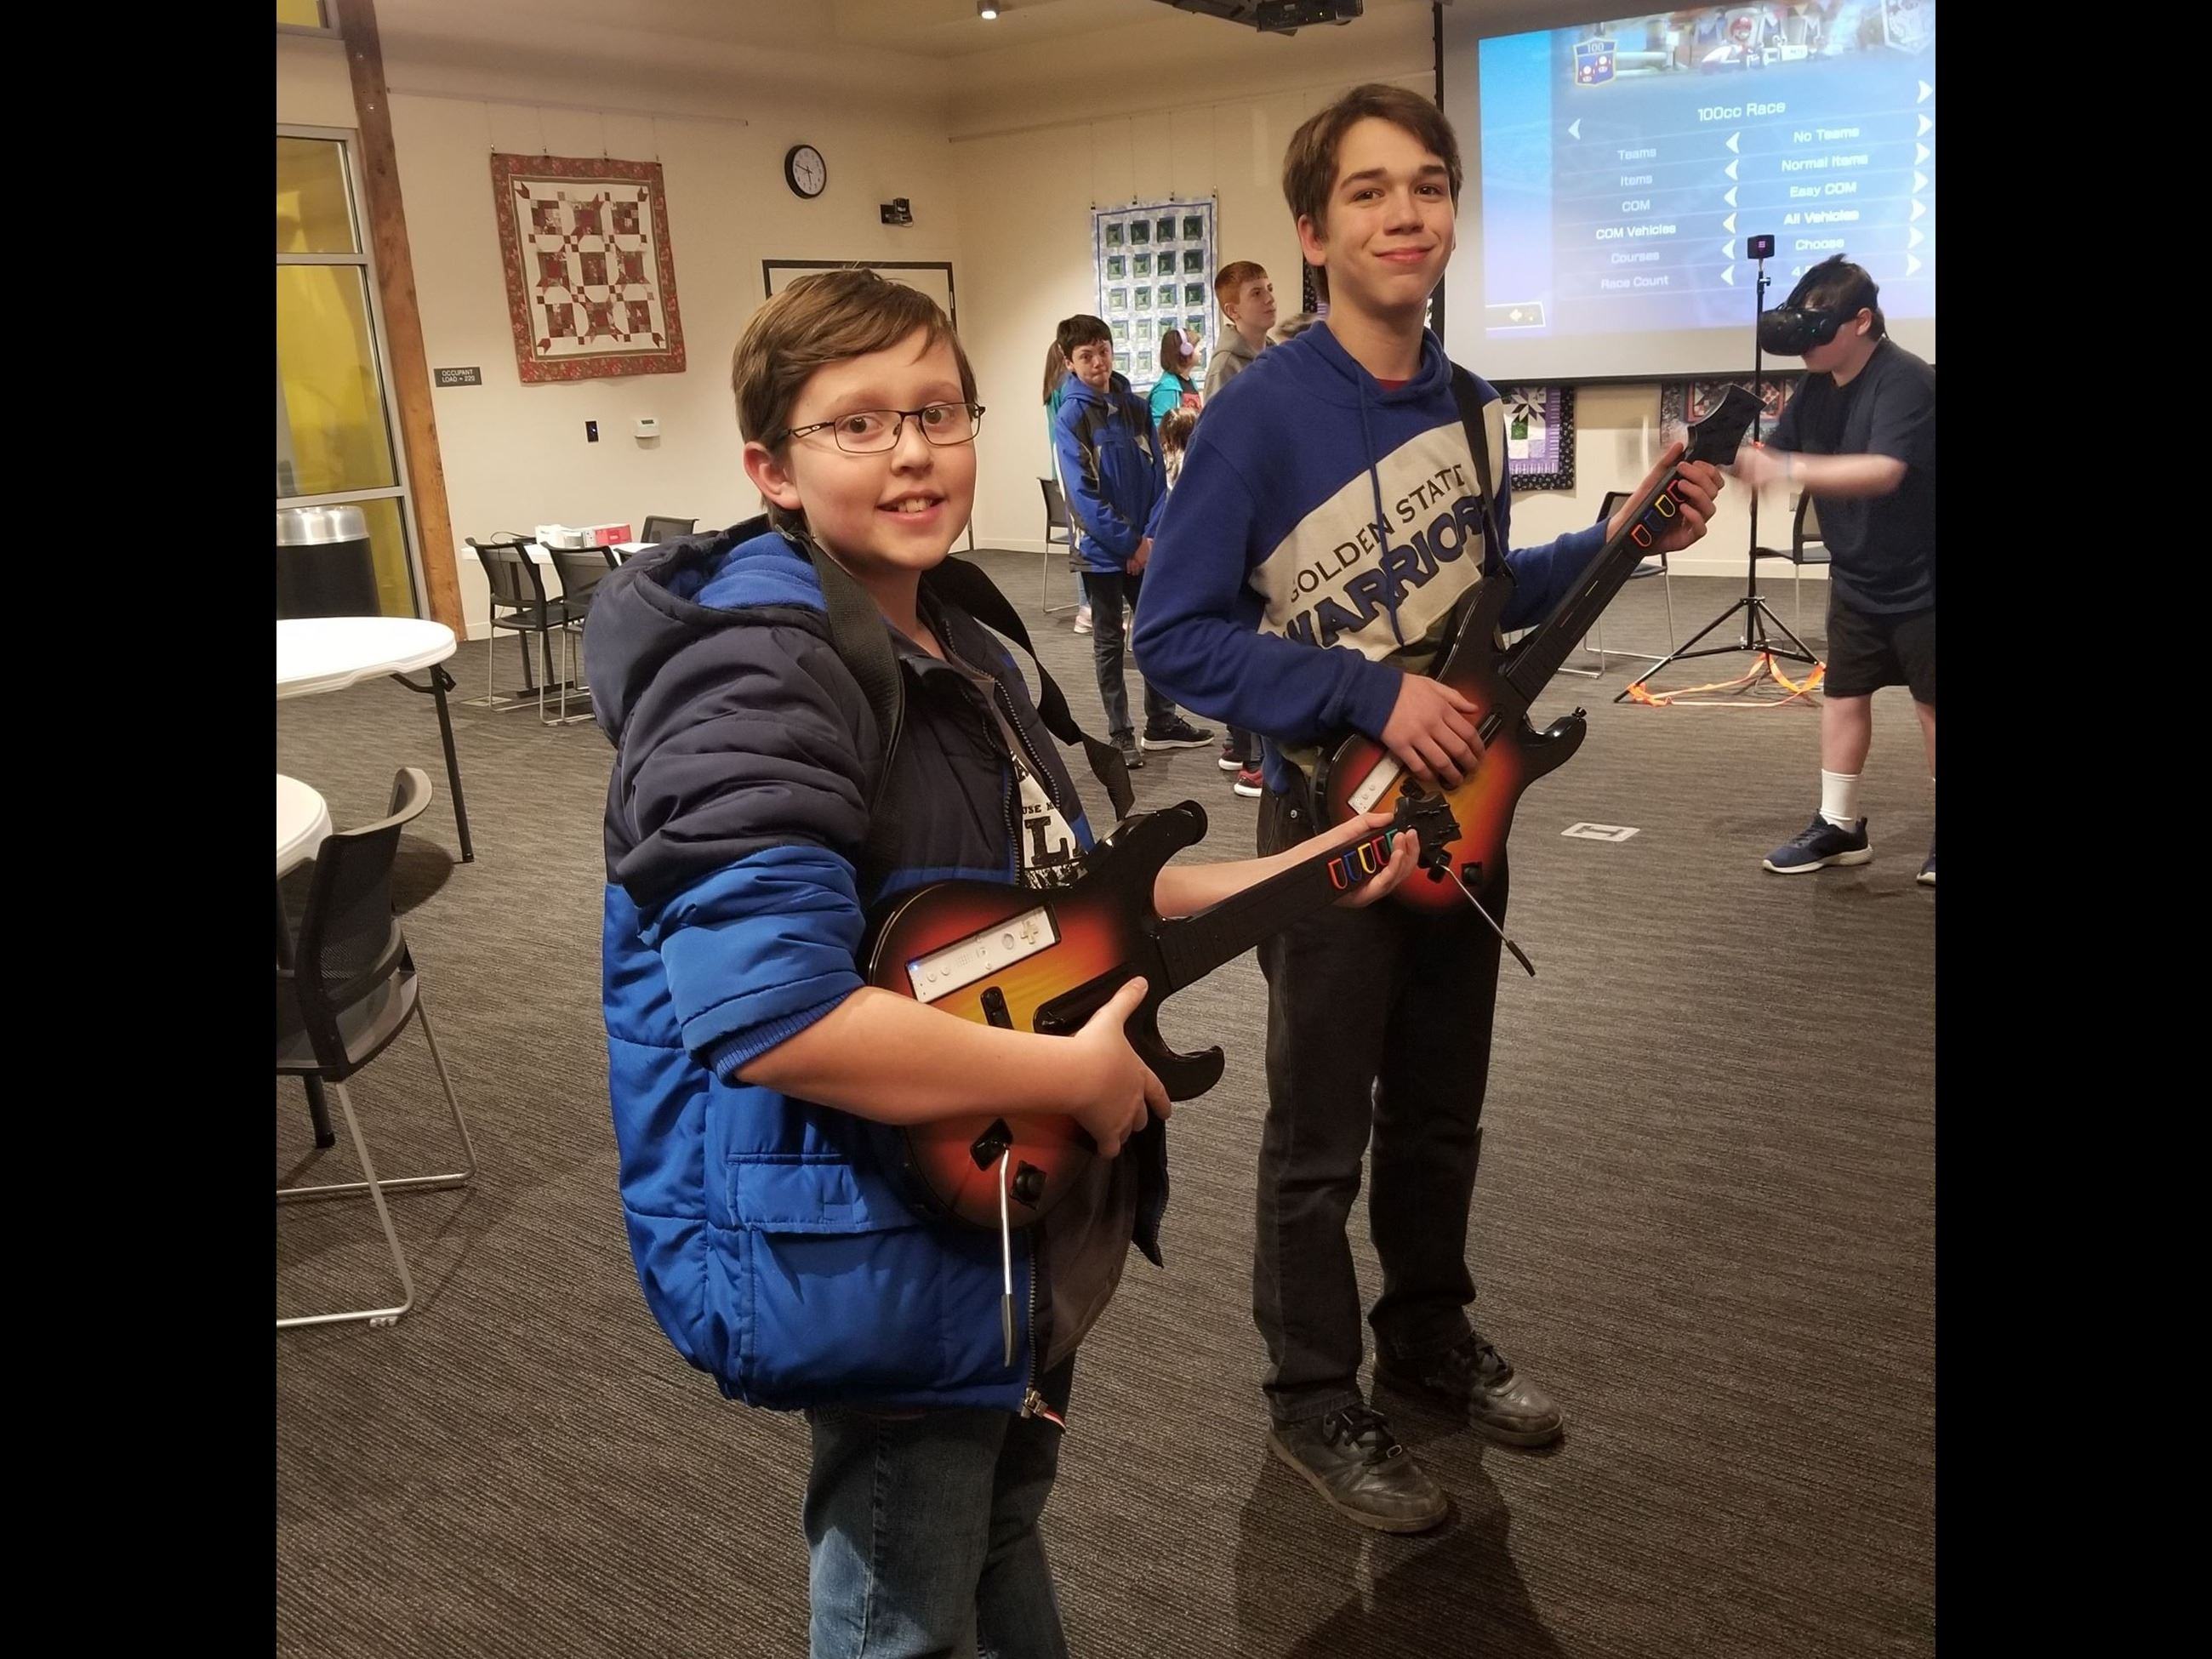 Teens rock out with Guitar Hero